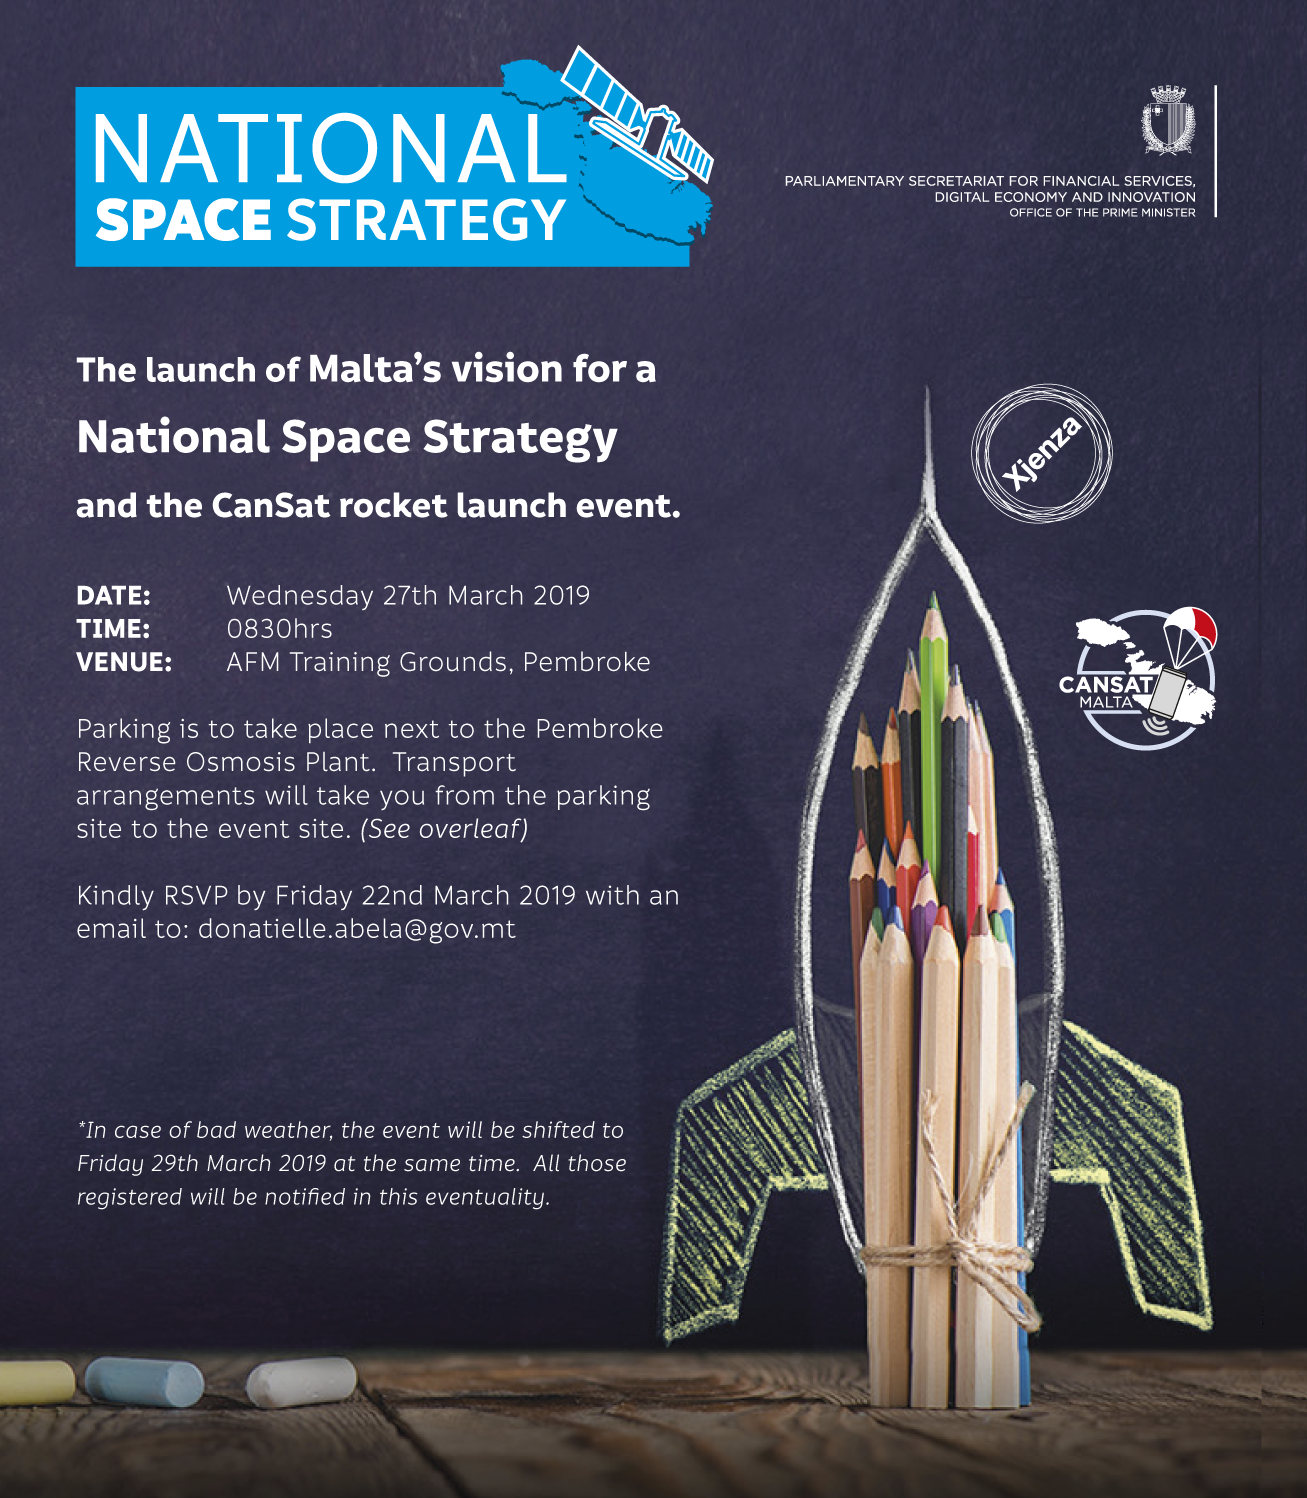 The Launch of Malta's vision for a National Space Strategy